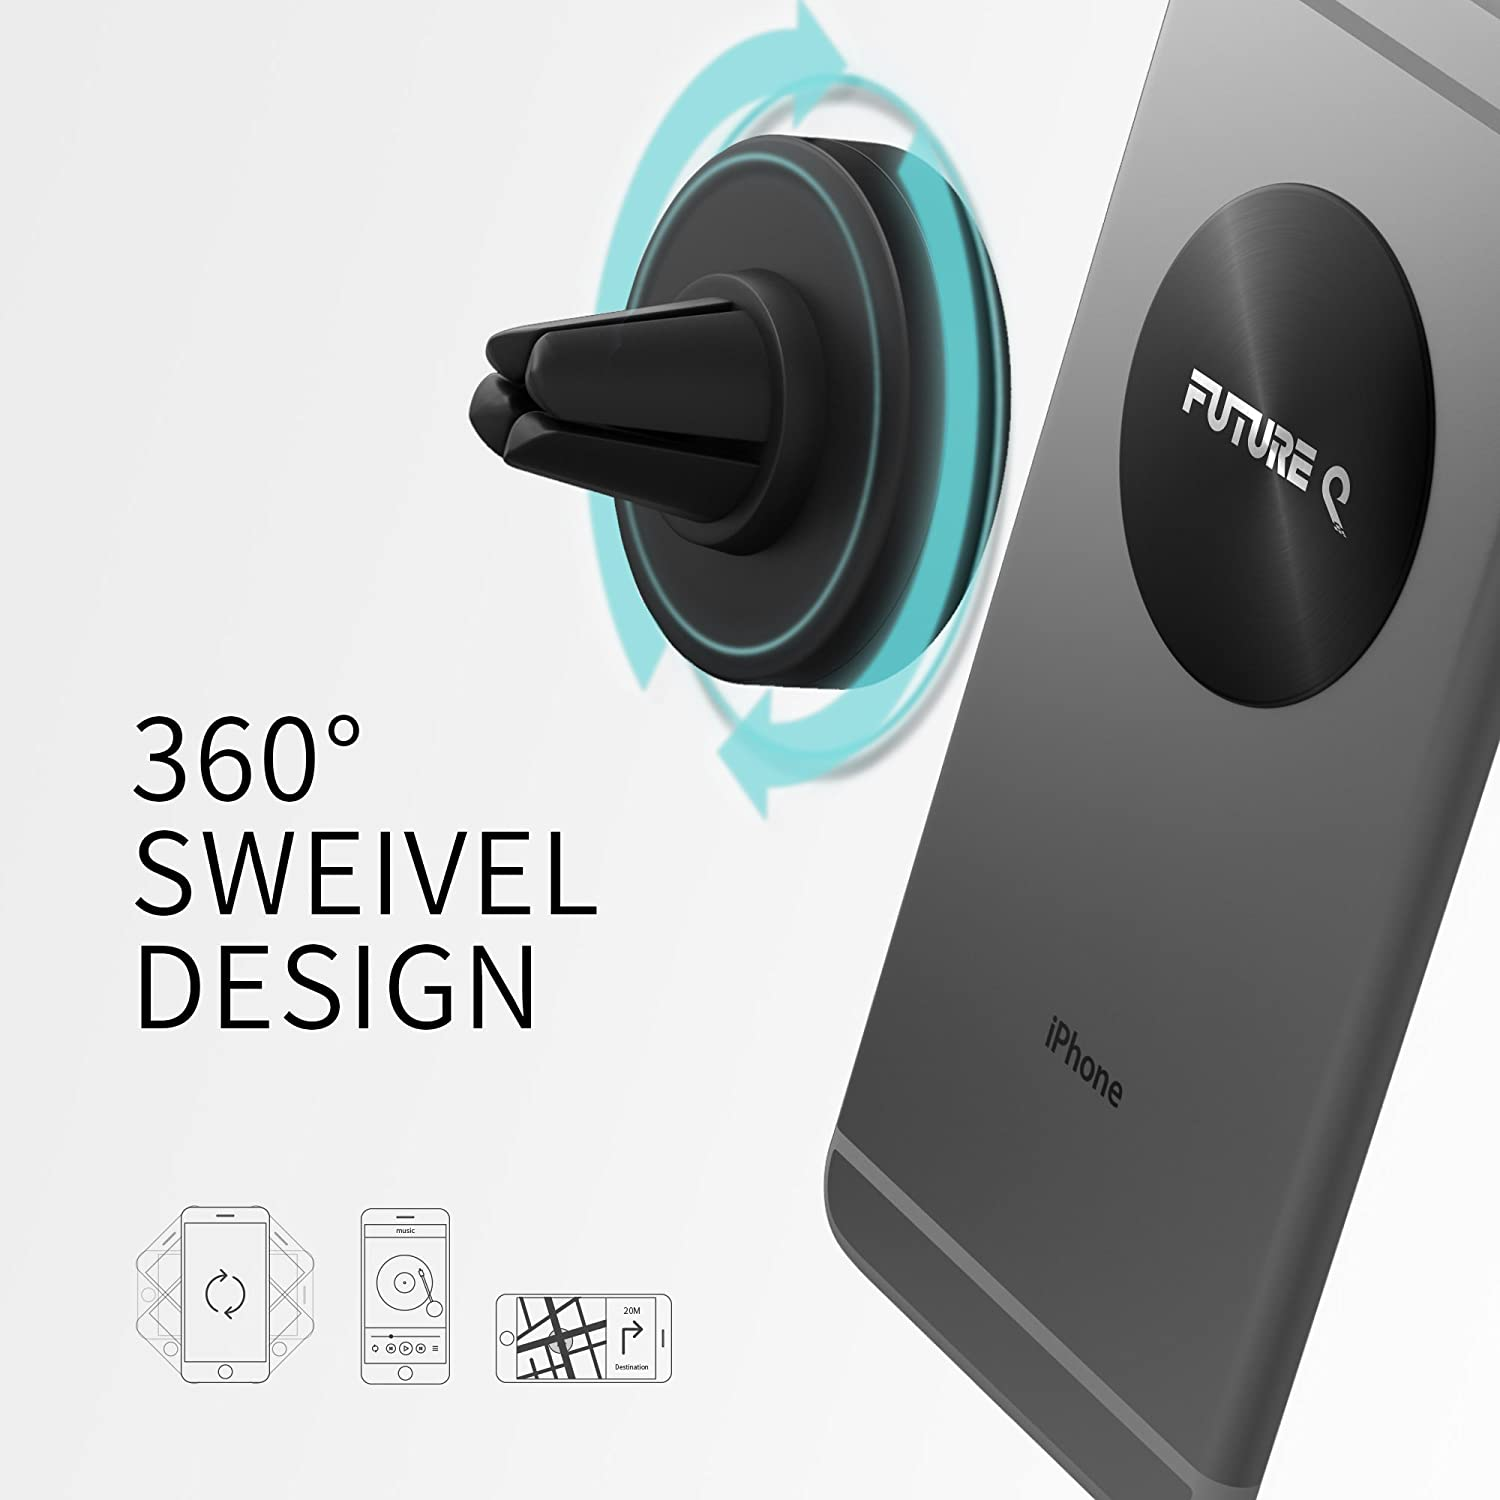 Black FBA/_FQ201703 FutureQ Universal Magnetic Air Vent Mount Car Phone Holder for Smart Phone iPhone 7 Plus 6S 6 SE 5S 5C 5 Car Mount Holder Note 5 4 2 S5 Samsung Galaxy S8 S7 S6 Edge